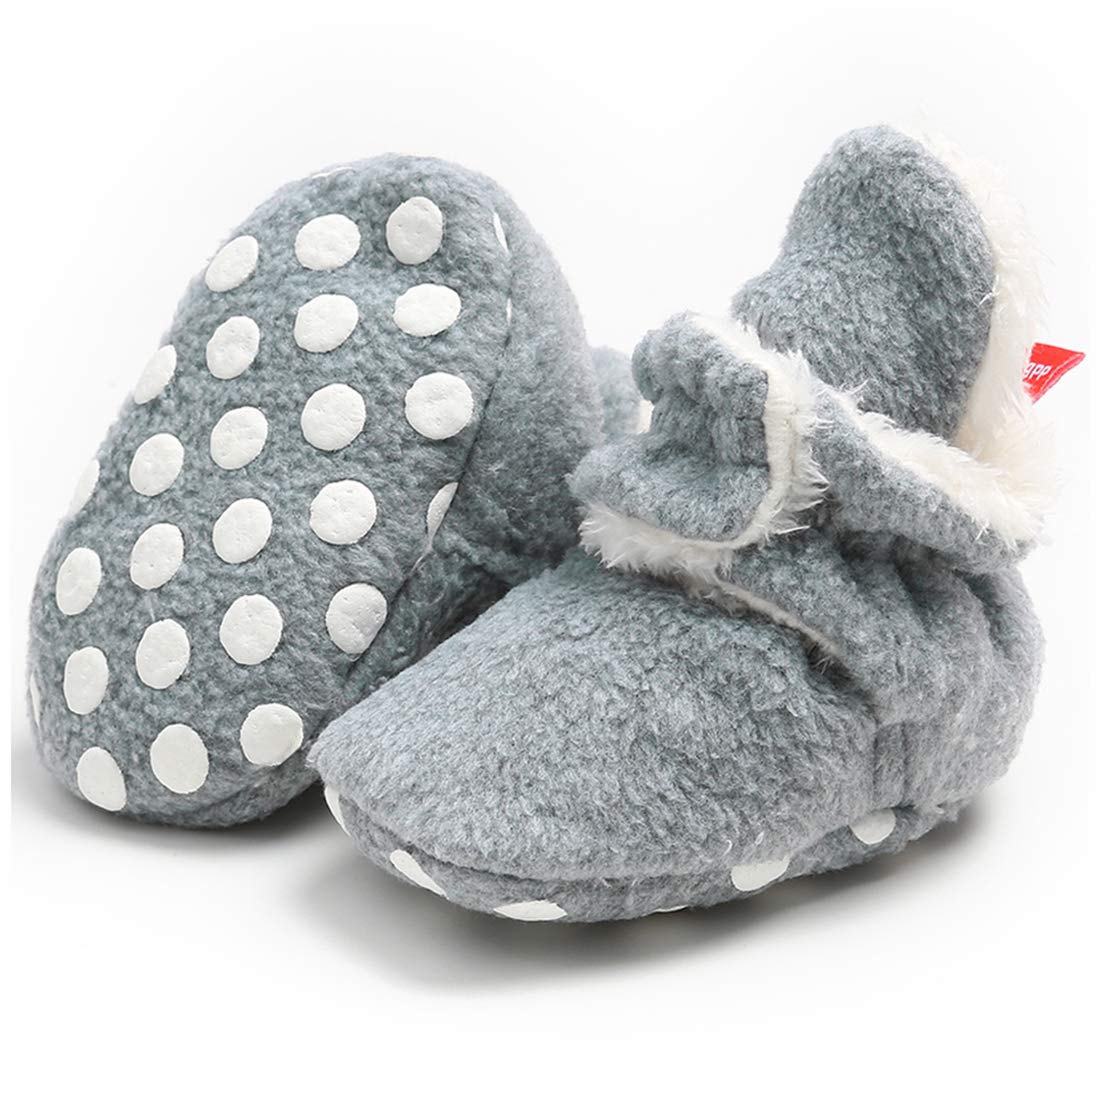 CENCIRILY Newborn Baby Boys Girls Cozy Fleece Booties Soft Non Slip Grips Sole Winter Socks Crib Shoes for Infant Toddler First Walkers